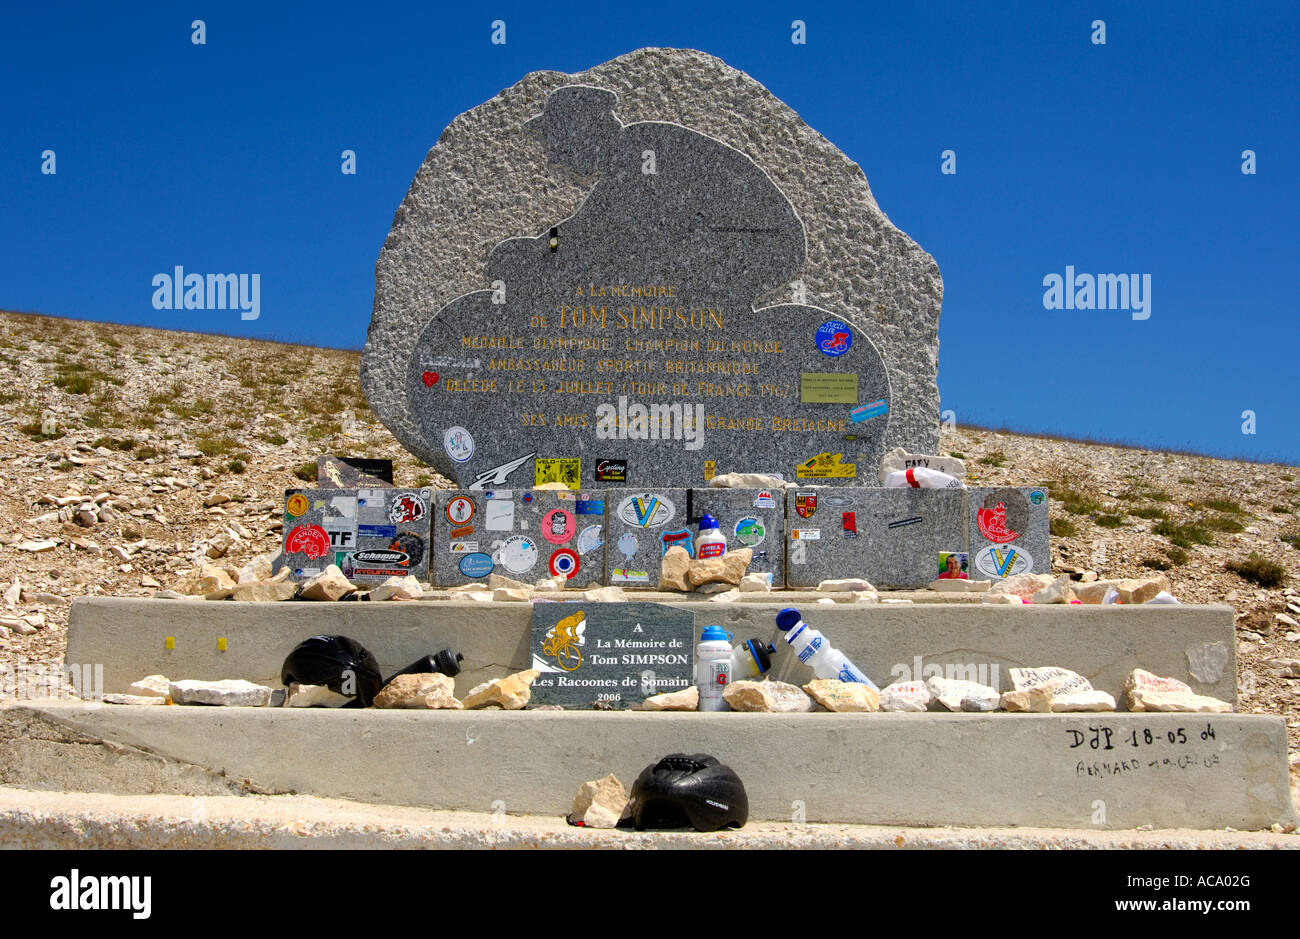 Memorial to Tom Simpson, first doping fatality at the Tour de France, Mont Ventoux, Provence, France - Stock Image